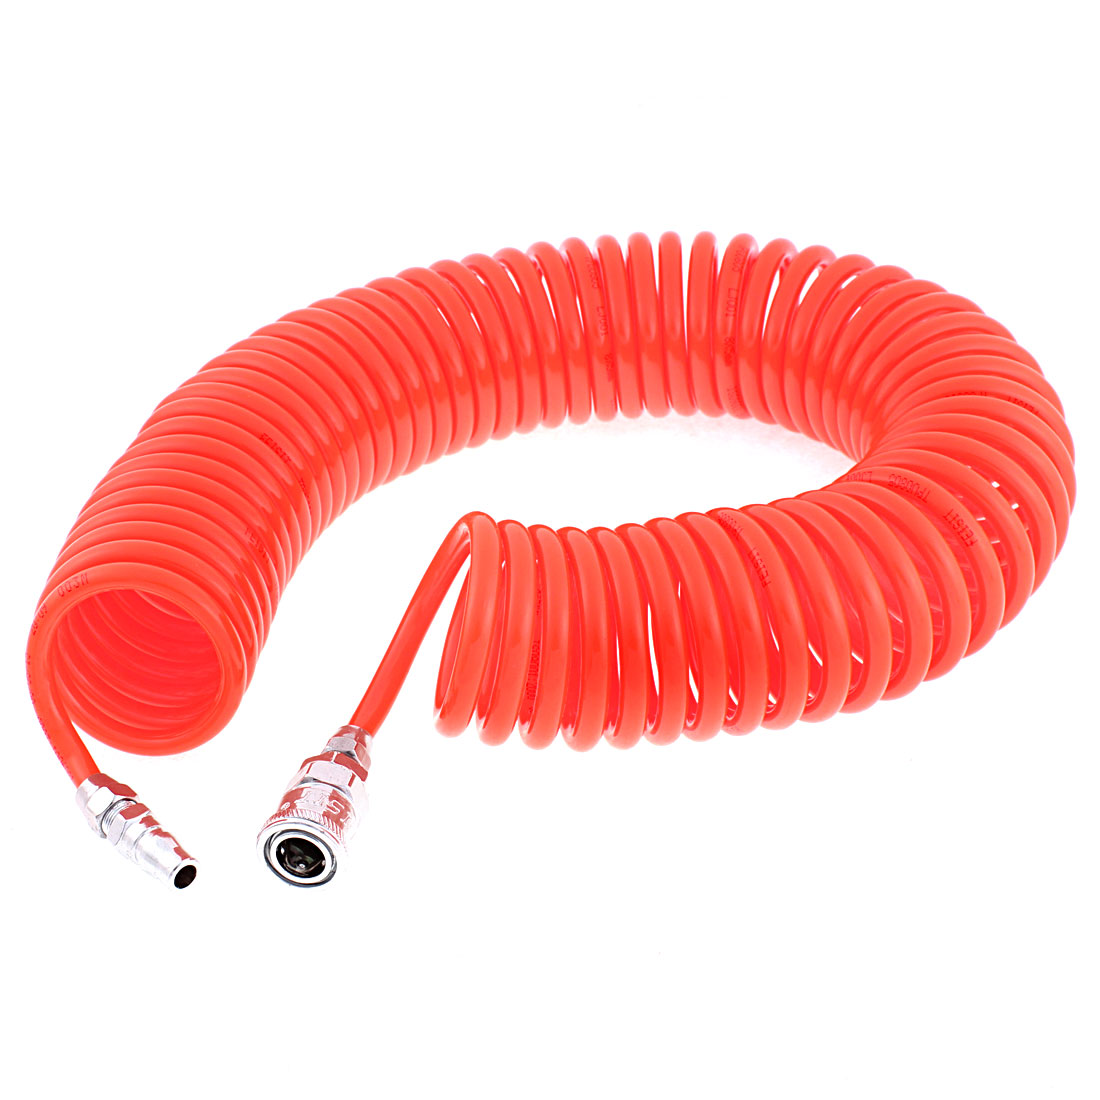 12 Meters Long 8mm x 5mm Polyurethane Coiled Air Hose Pipe Orange